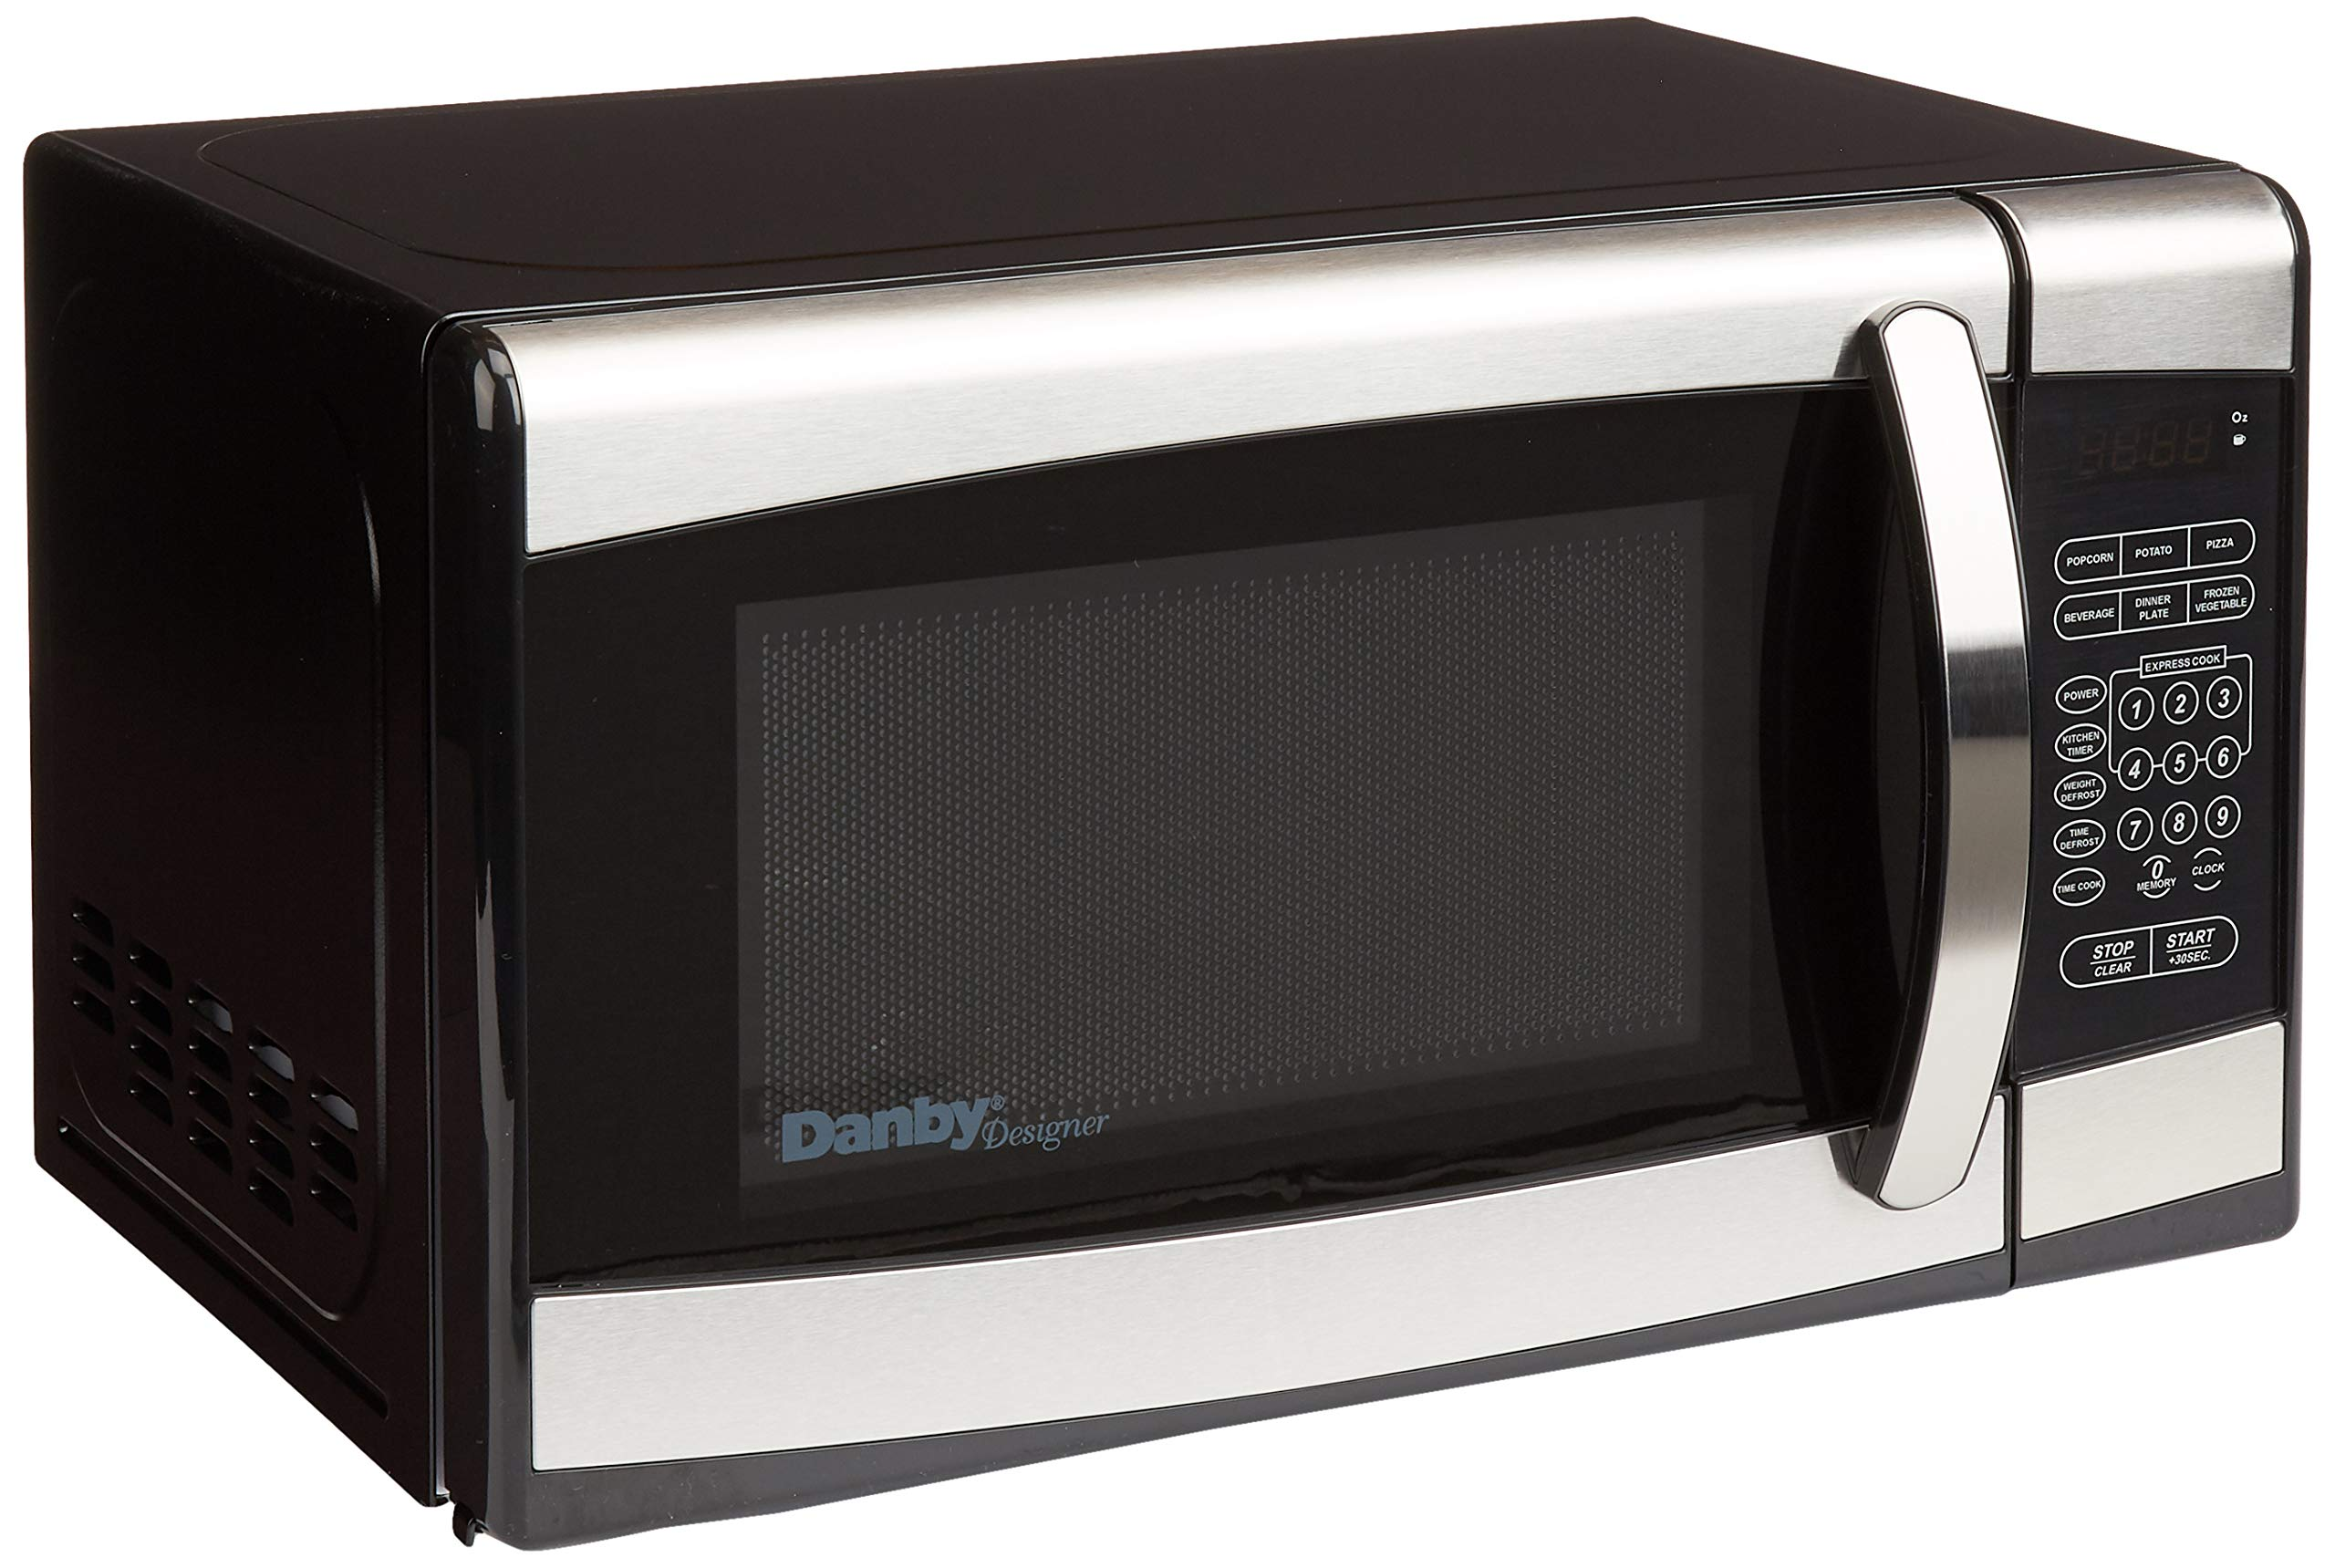 Danby Designer Countertop Microwave Stainless